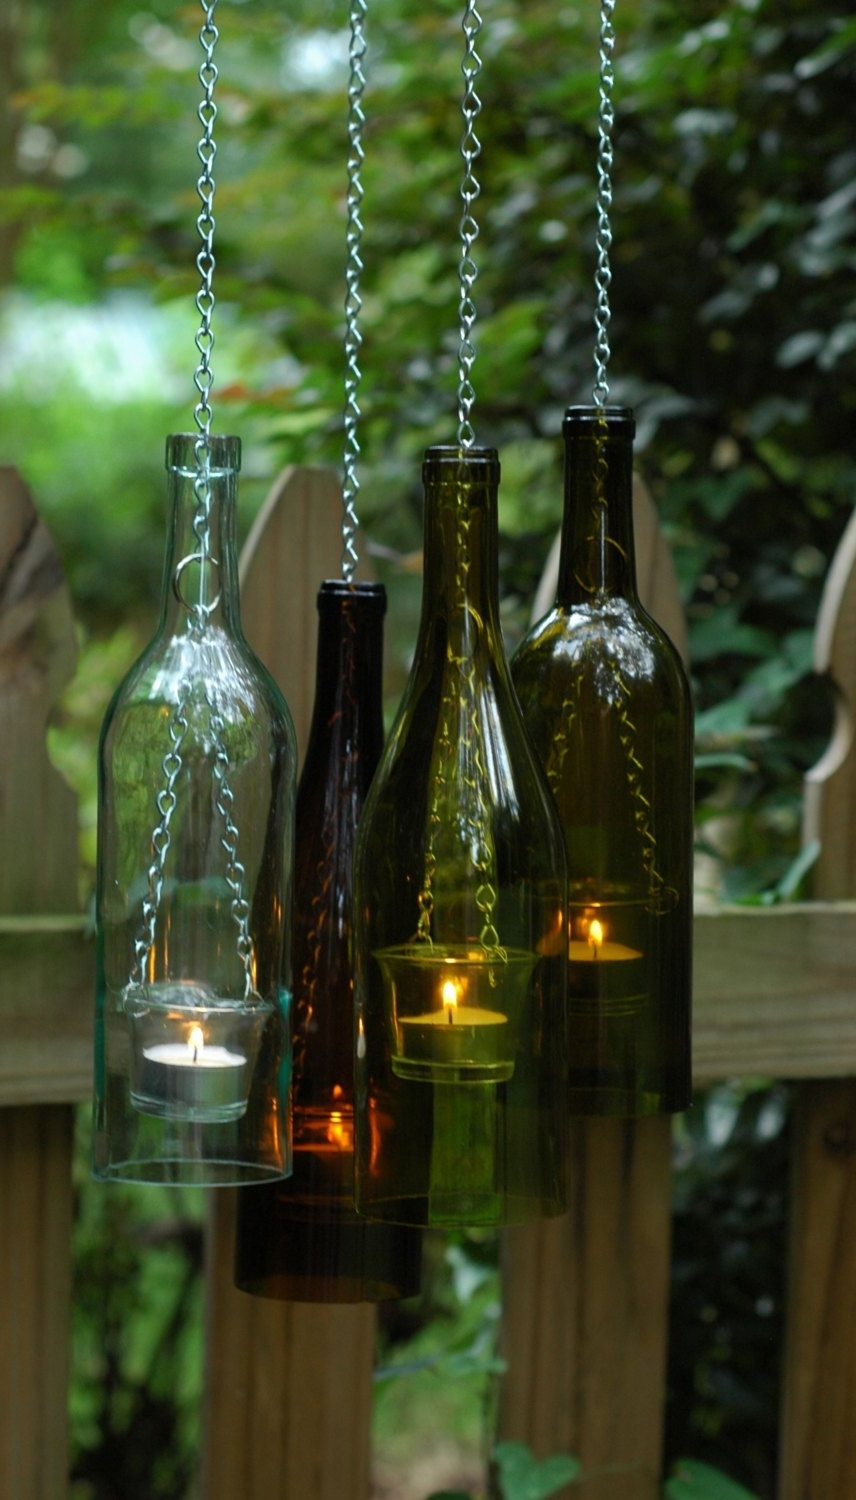 Well Liked Outdoor Hanging Bottle Lights Within 16 Charming Upcycled Outdoor Spring Lighting Ideas (View 6 of 20)